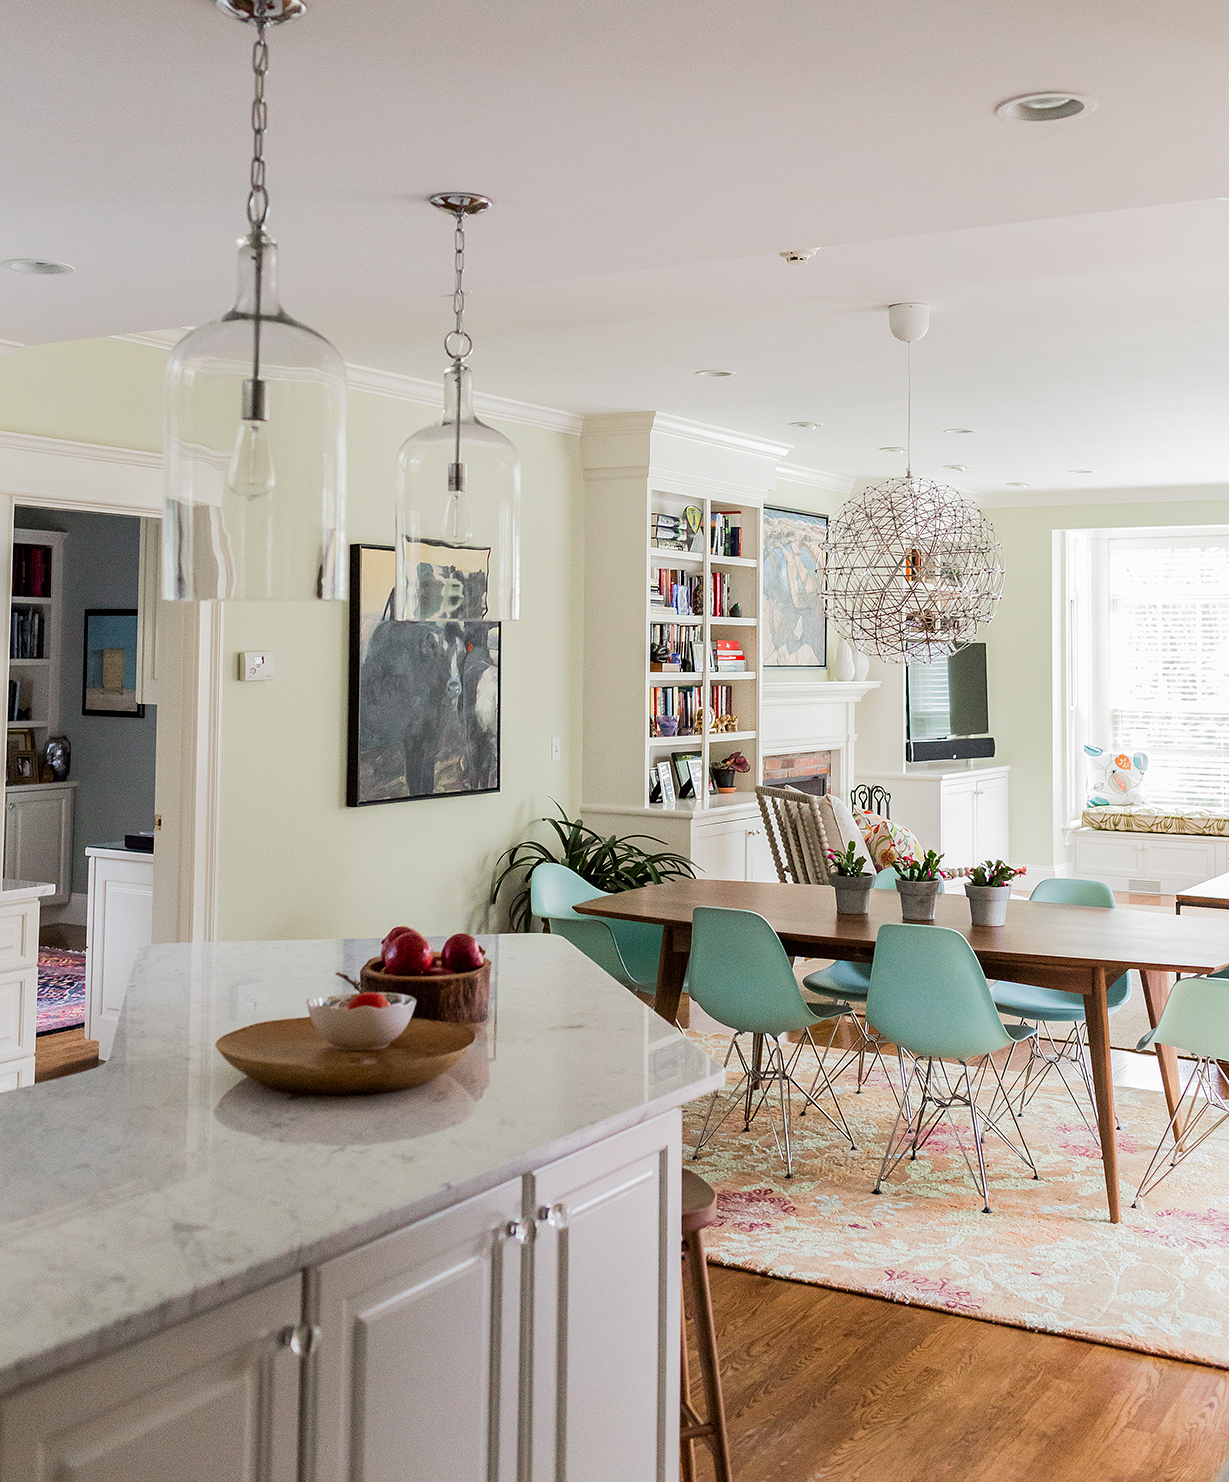 Home Renovation Design: House Renovation For Busy Family